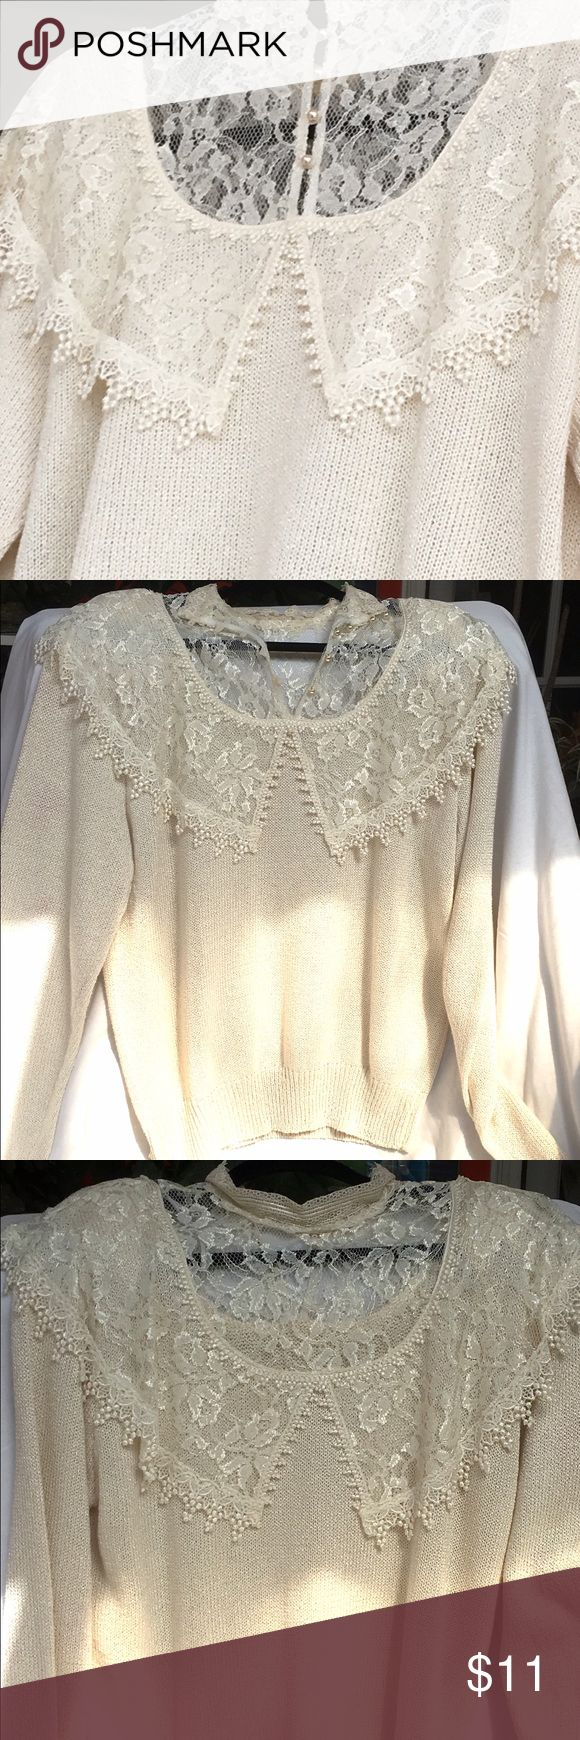 Beaded Sweater:🌈SALE🌈 I accept most offers! 🌈 This nameless soft size L beautifully beaded around neck and shoulders with lace overlay is so elegant. It has padded shoulders and wears nicely over a long khaki skirt or even jeans. Thank you for shopping my closet today! 🦋 None Sweaters Crew & Scoop Necks